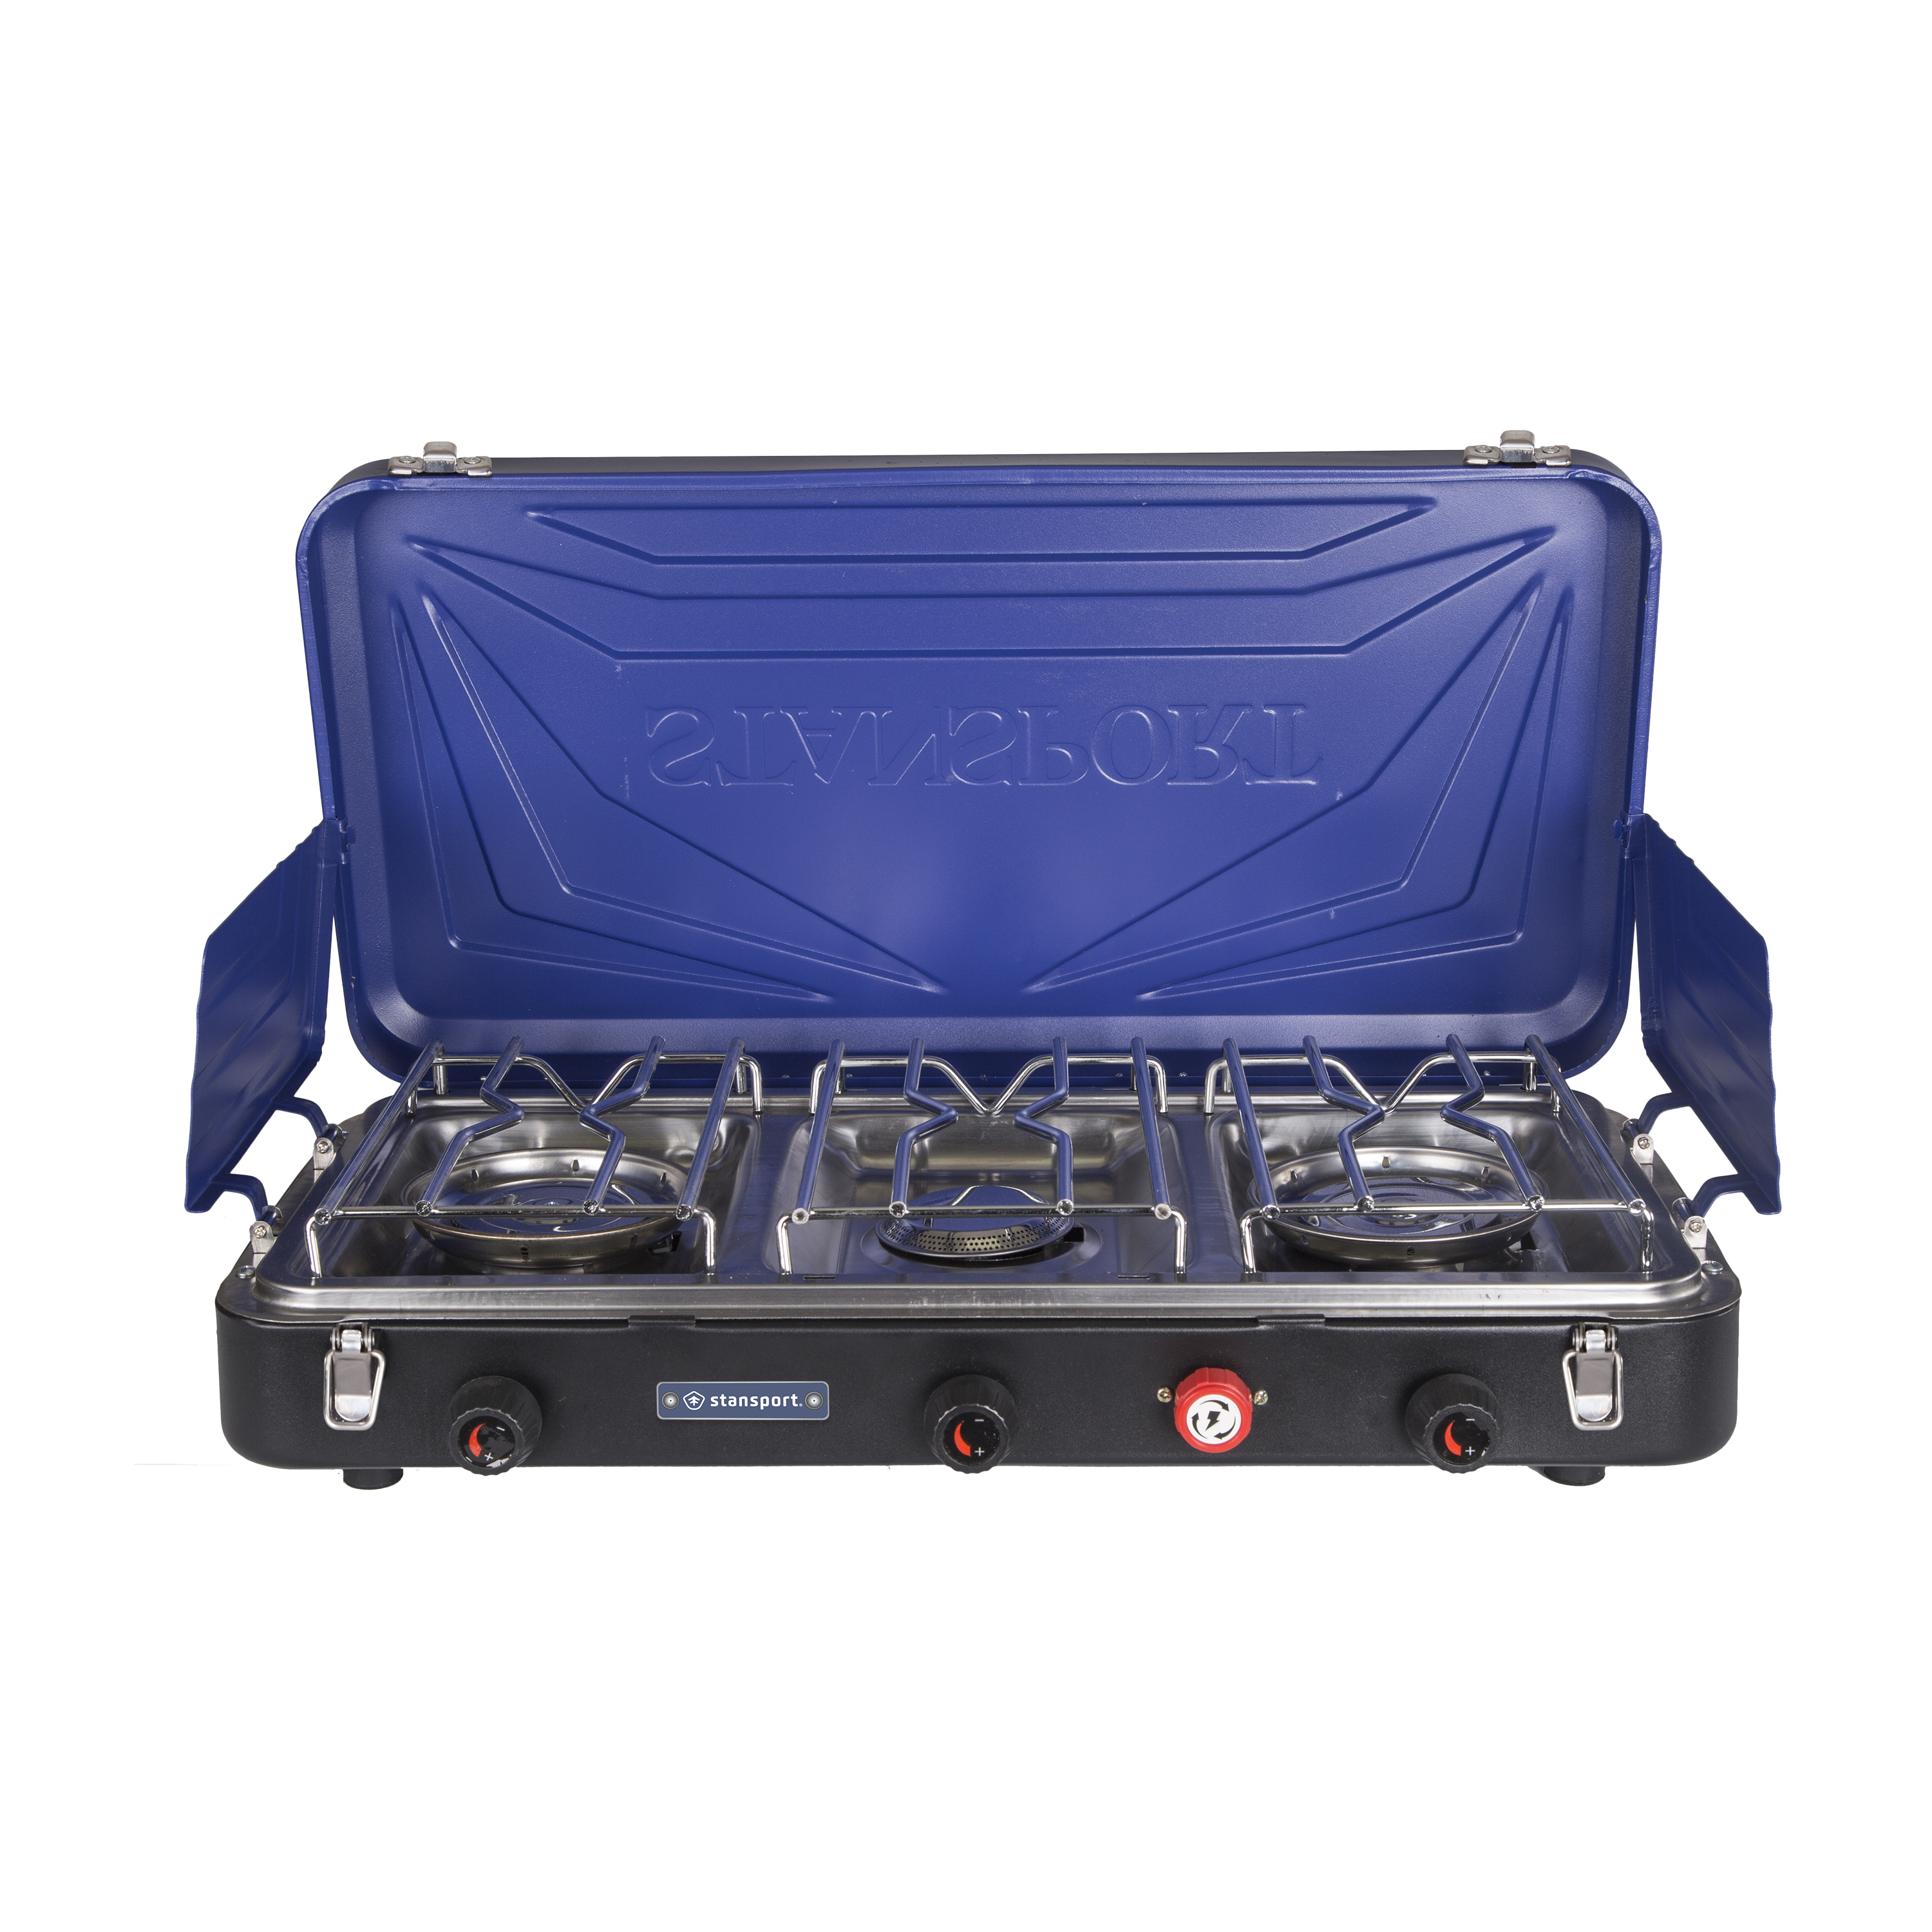 Stansport Outfitter Series Propane Stove 2-25 K & 1-10 K Burners - Blue